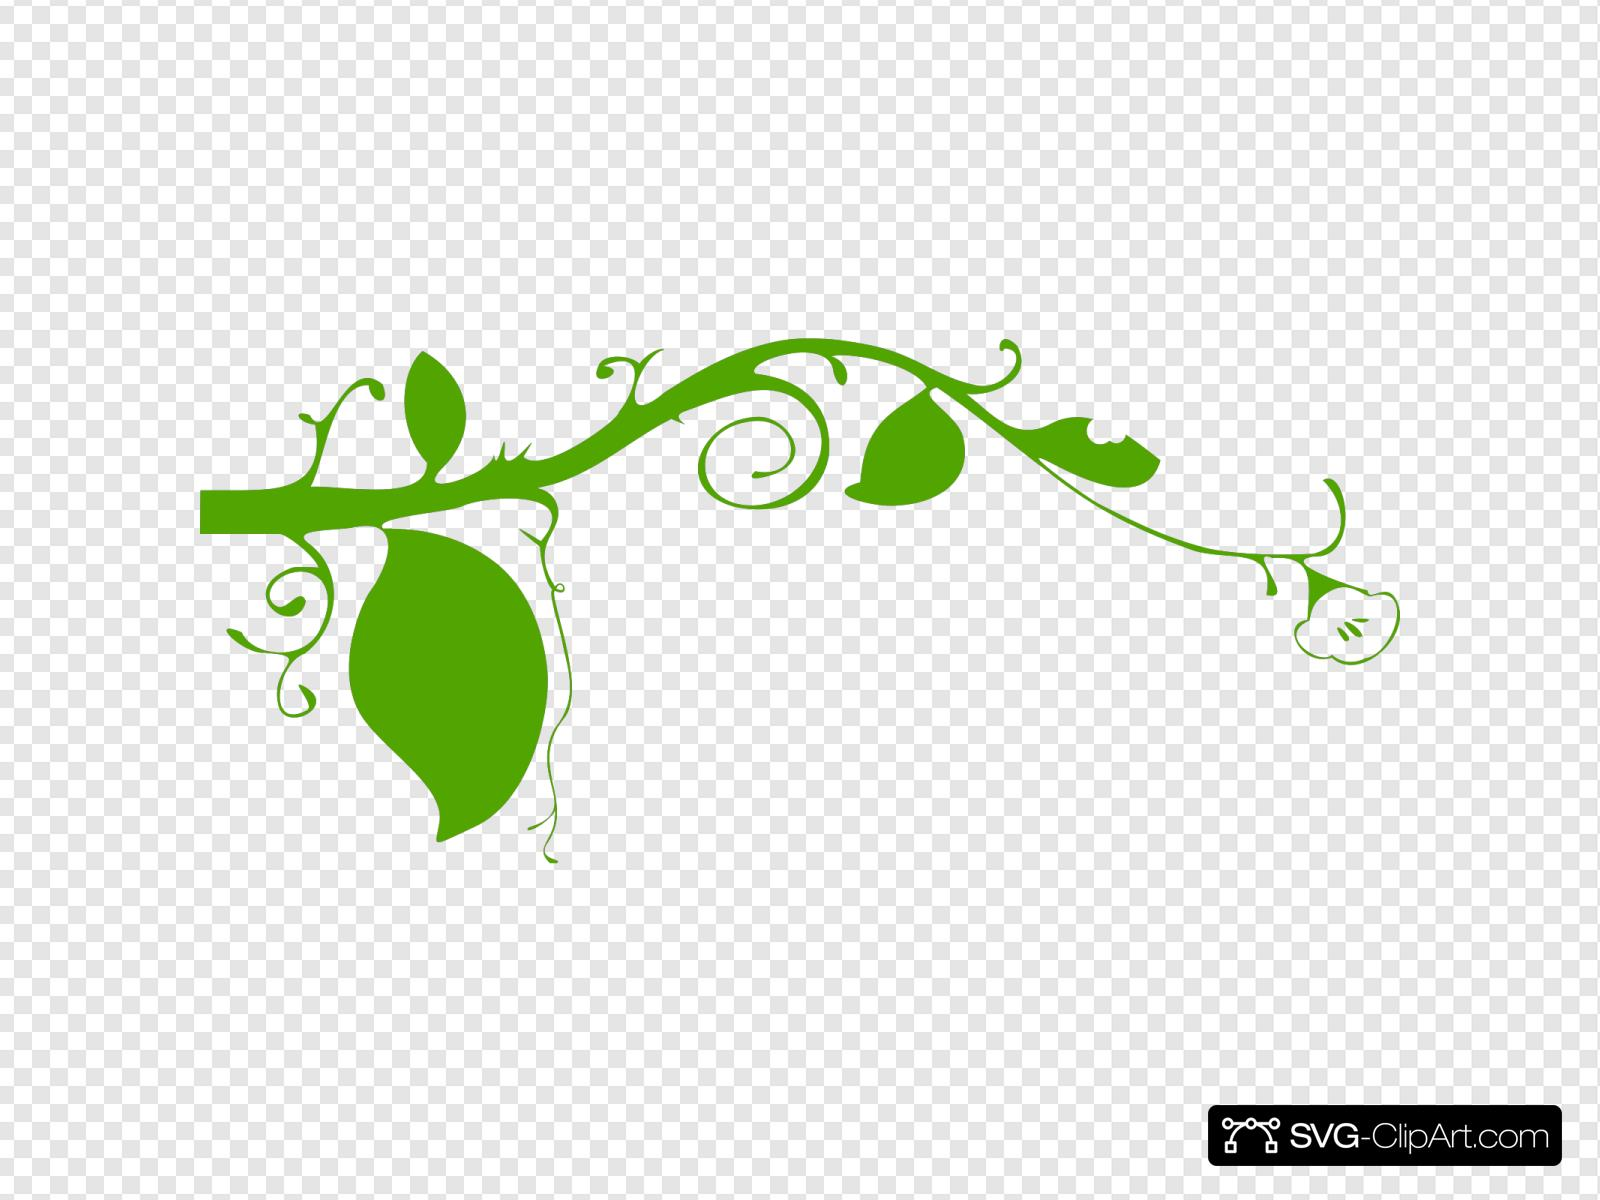 Black And White Flower, Shape, Iphone, Plant Stem, Leaf, Green, Flora,  Branch transparent background PNG clipart   HiClipart